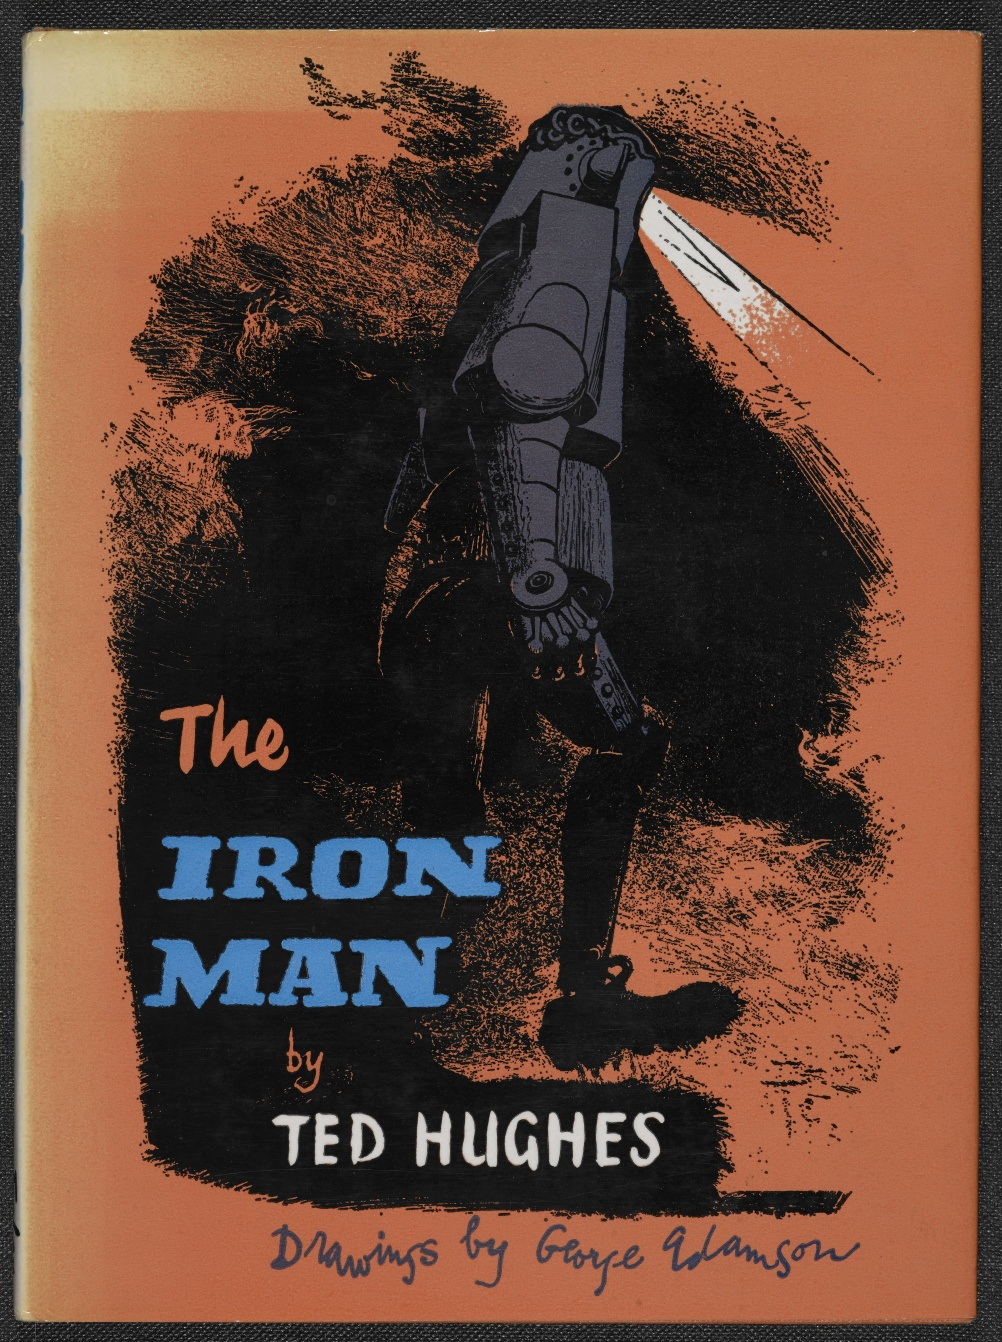 Cover for The Iron Man by Ted Hughes. Published by Faber and Faber 1968. Image by George Adamson.